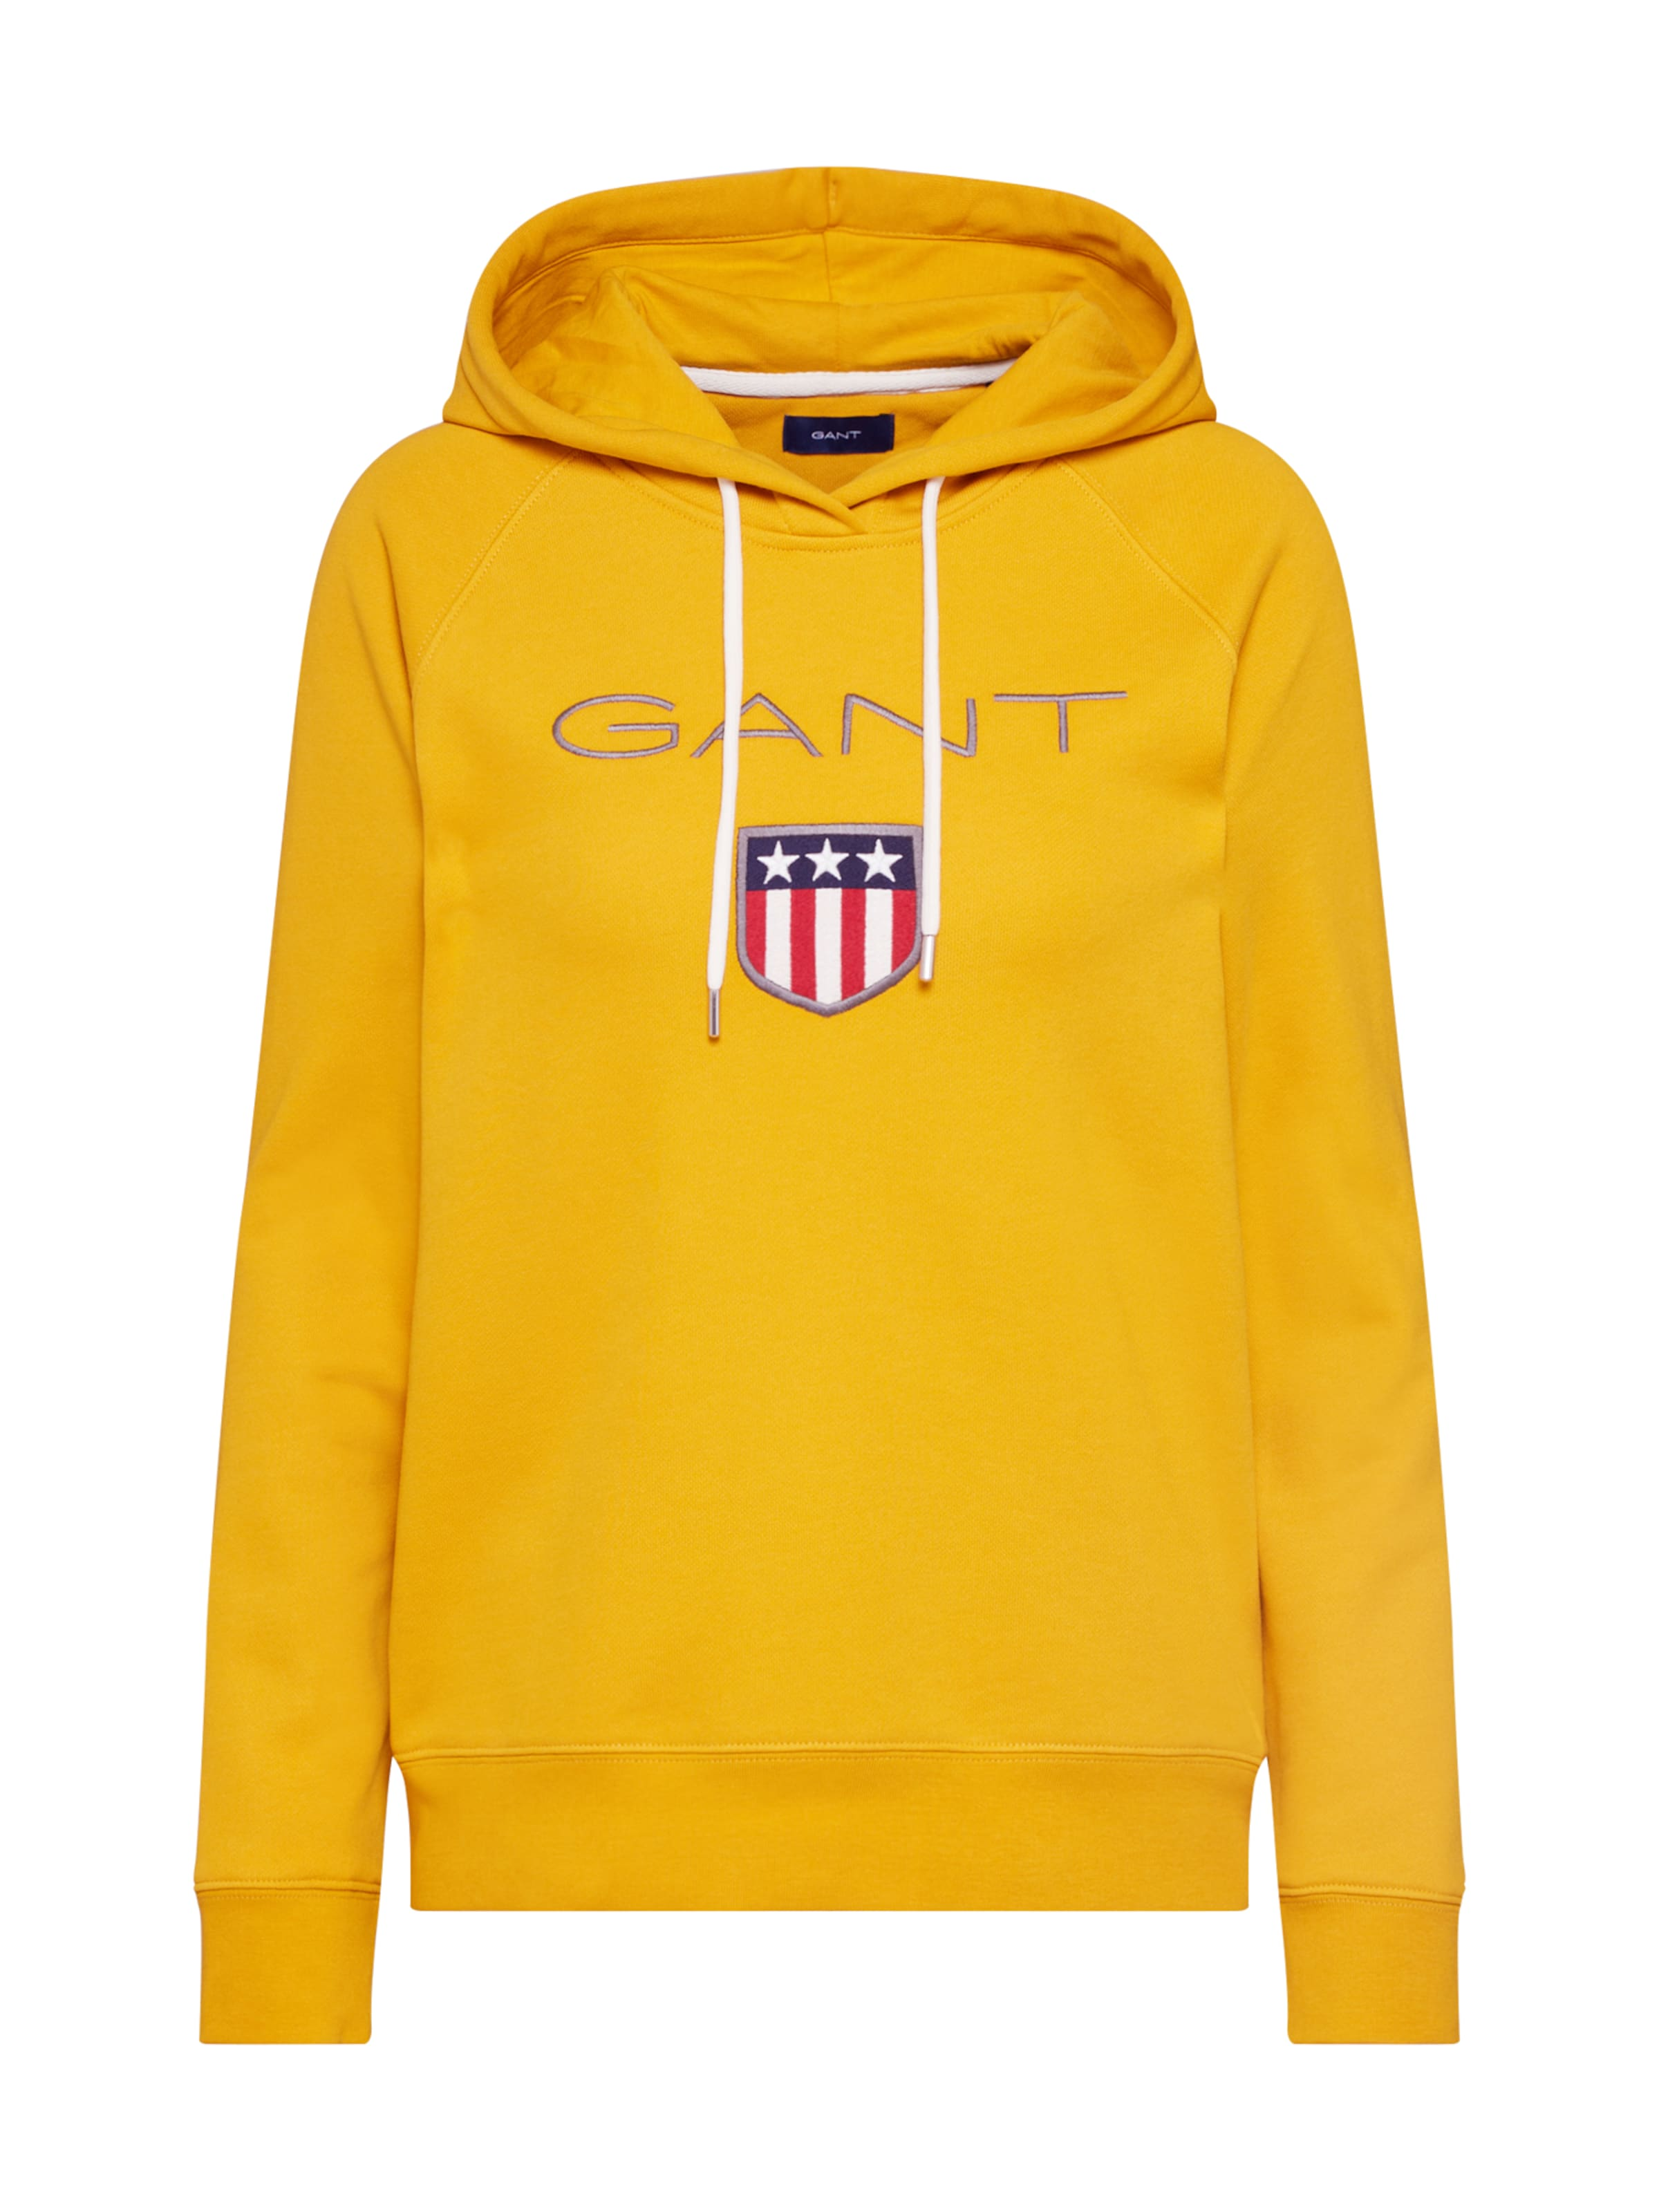 In Gant Sweatshirt Gant Goldgelb 'shield' 'shield' Sweatshirt OuXkZiP